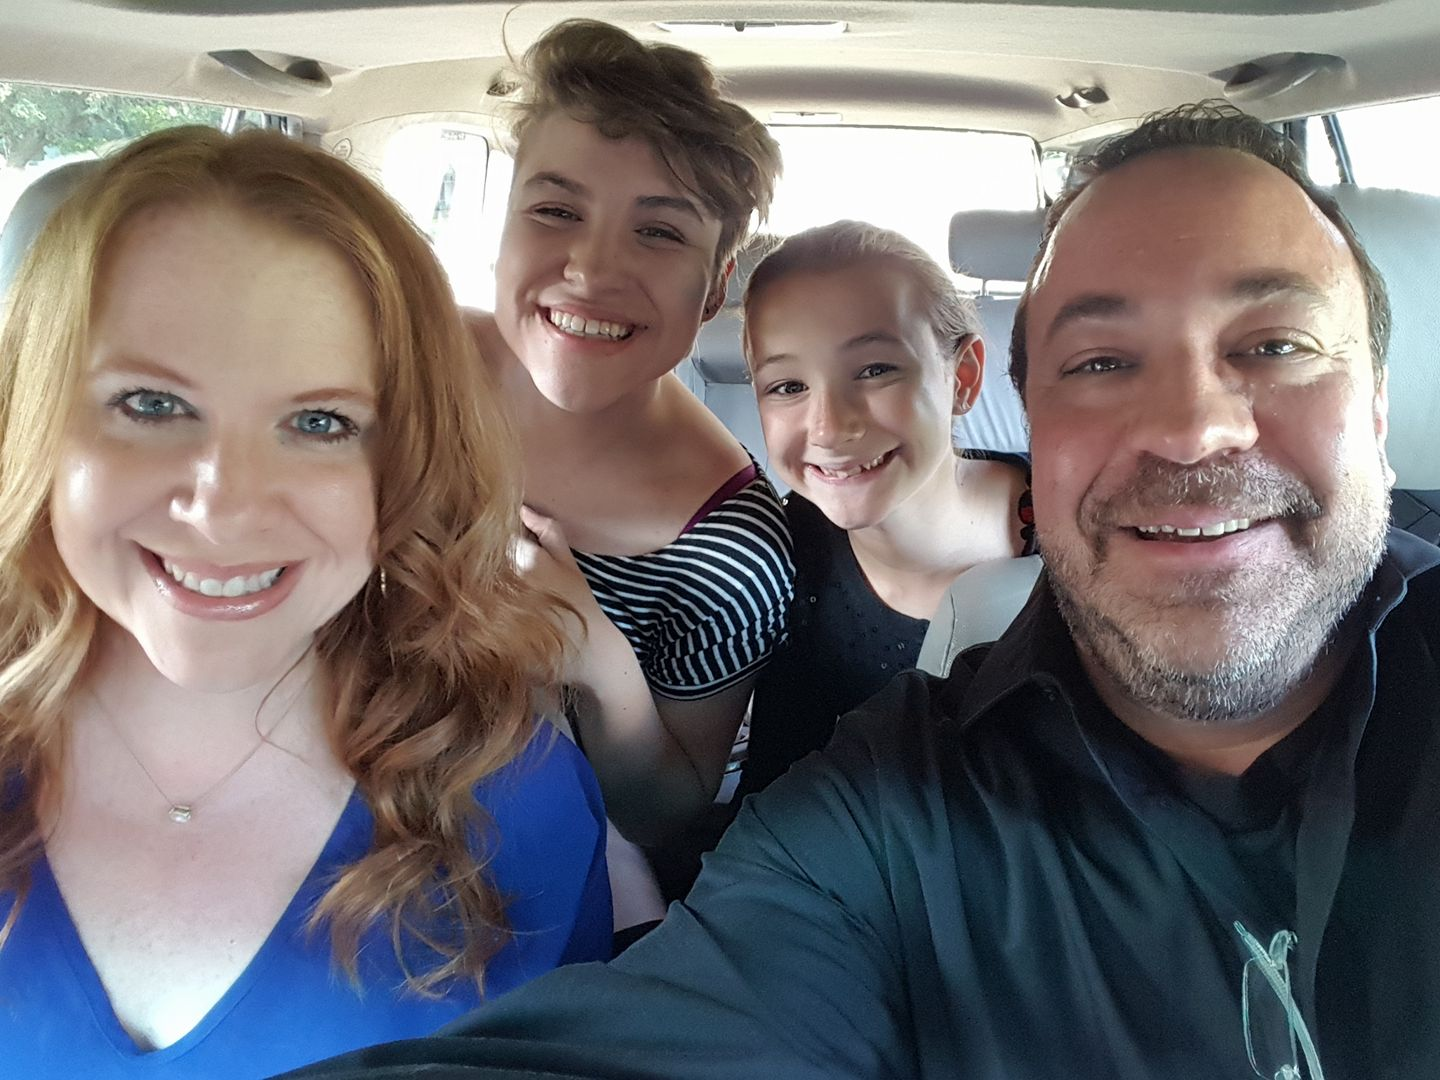 PODCAST: Who's The Better Driving Instructor, Mom or Dad?